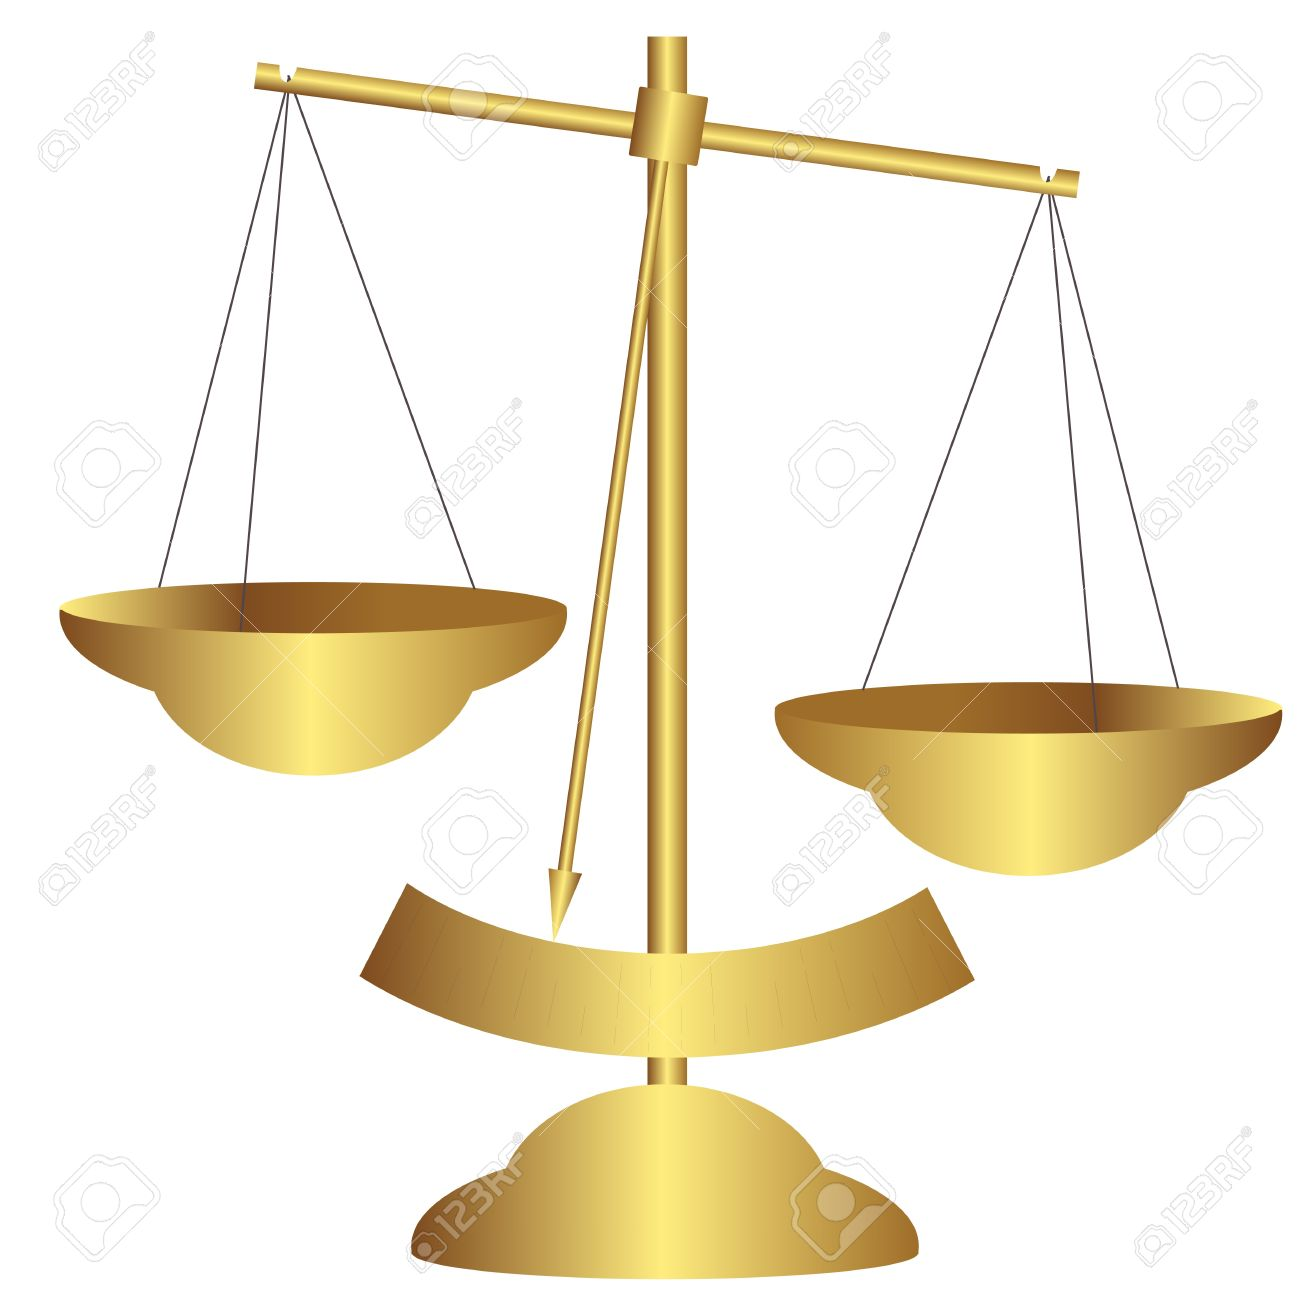 Balance scale clipart free download best balance scale clipart on 1300x1300 scale clipart balance payment biocorpaavc Images